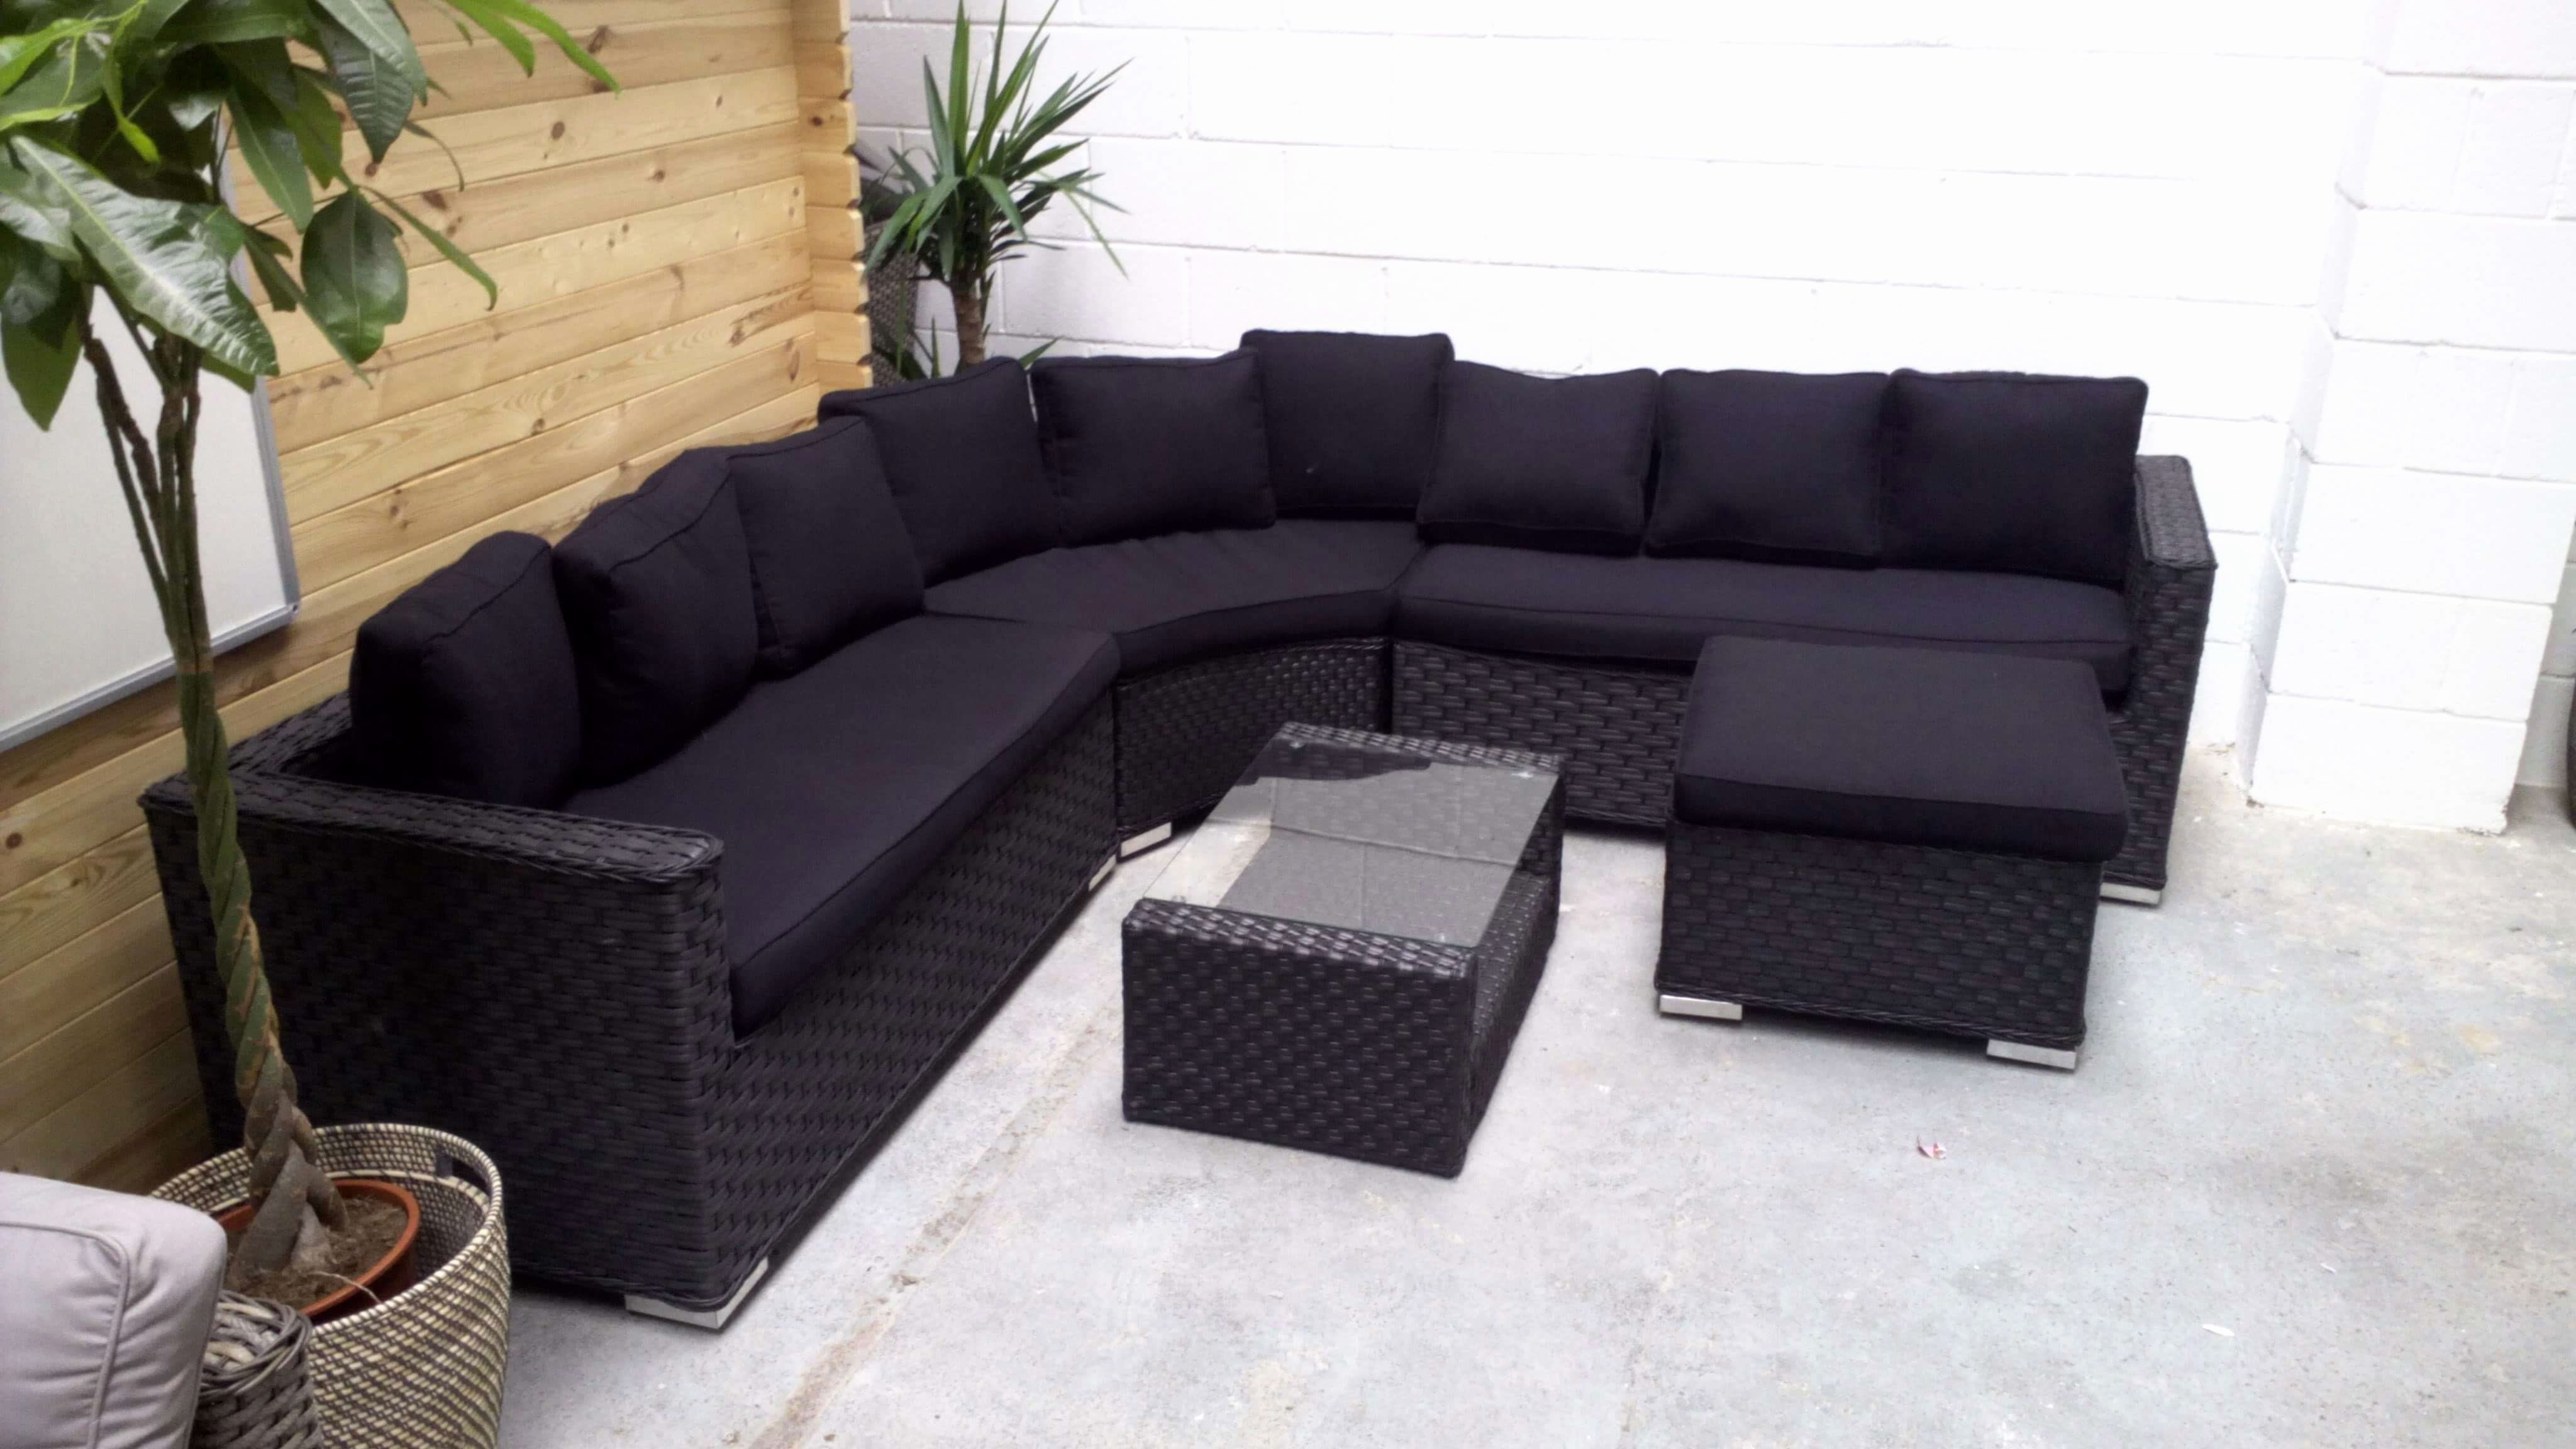 Luxury Rounded Corner Sofa Art Awesome Brantwood Rattan Round 5 Piece